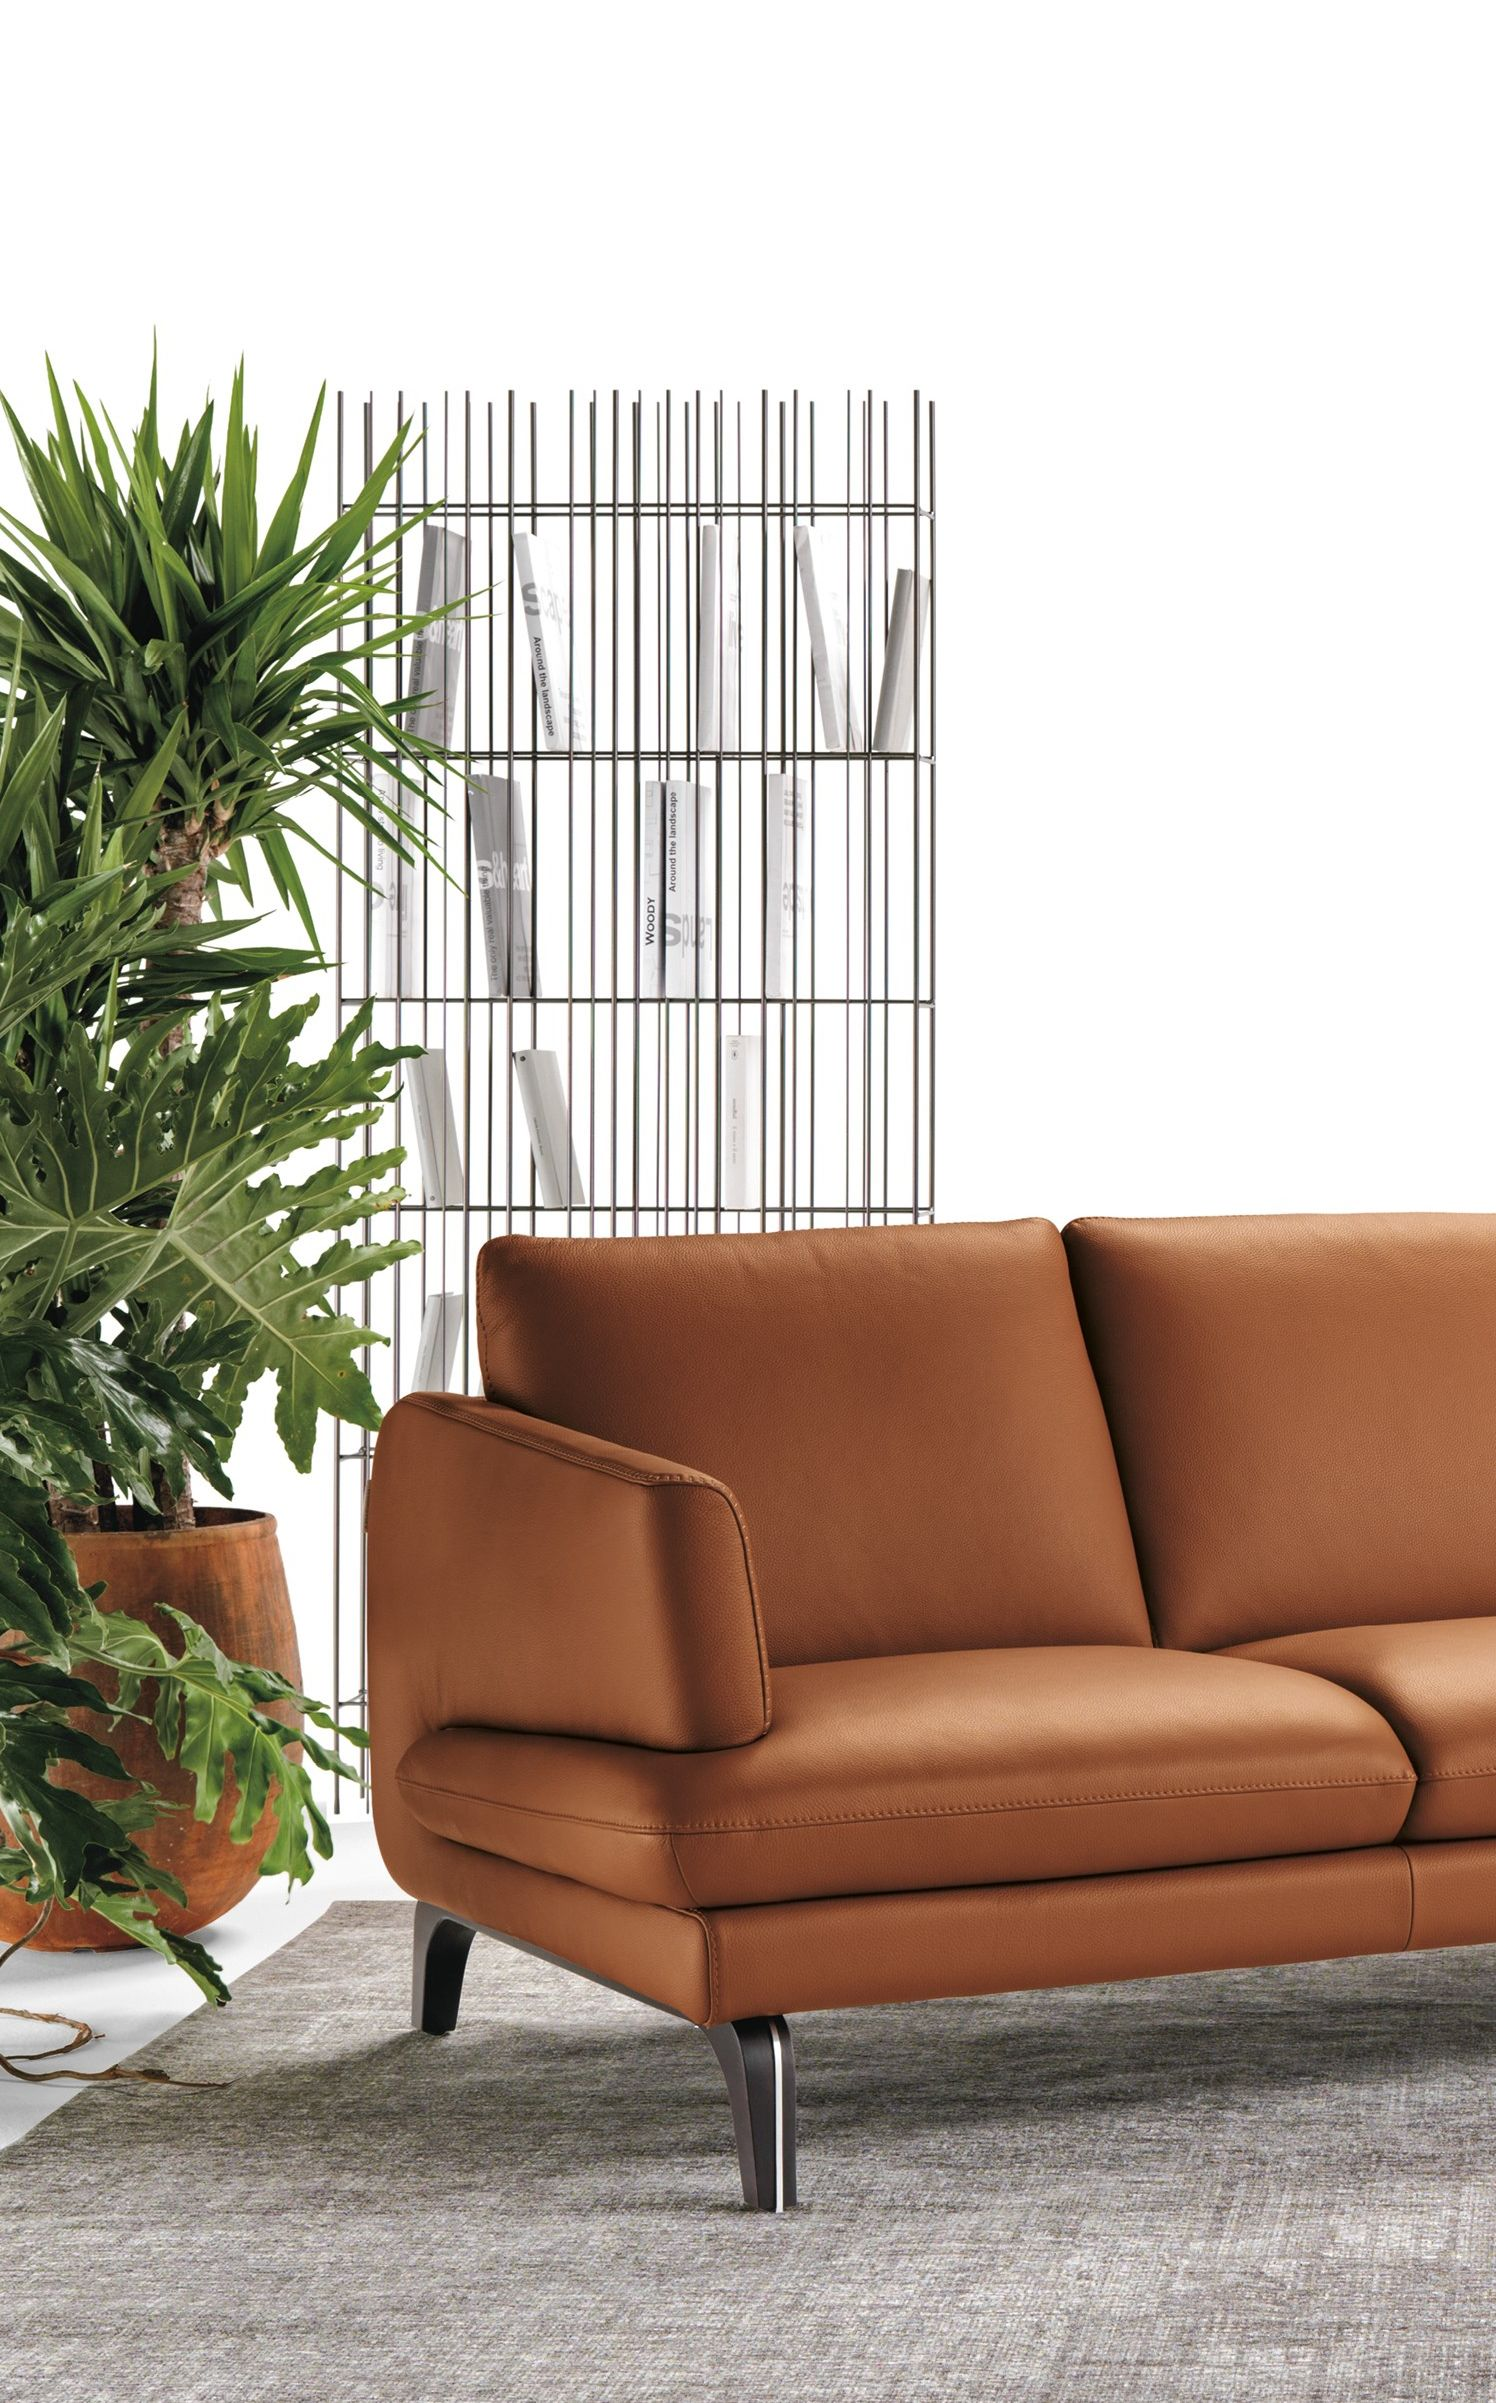 ESPRIT, 3 seater leather sofa | Chairs, Sofas & Armchairs| DESIGN in ...